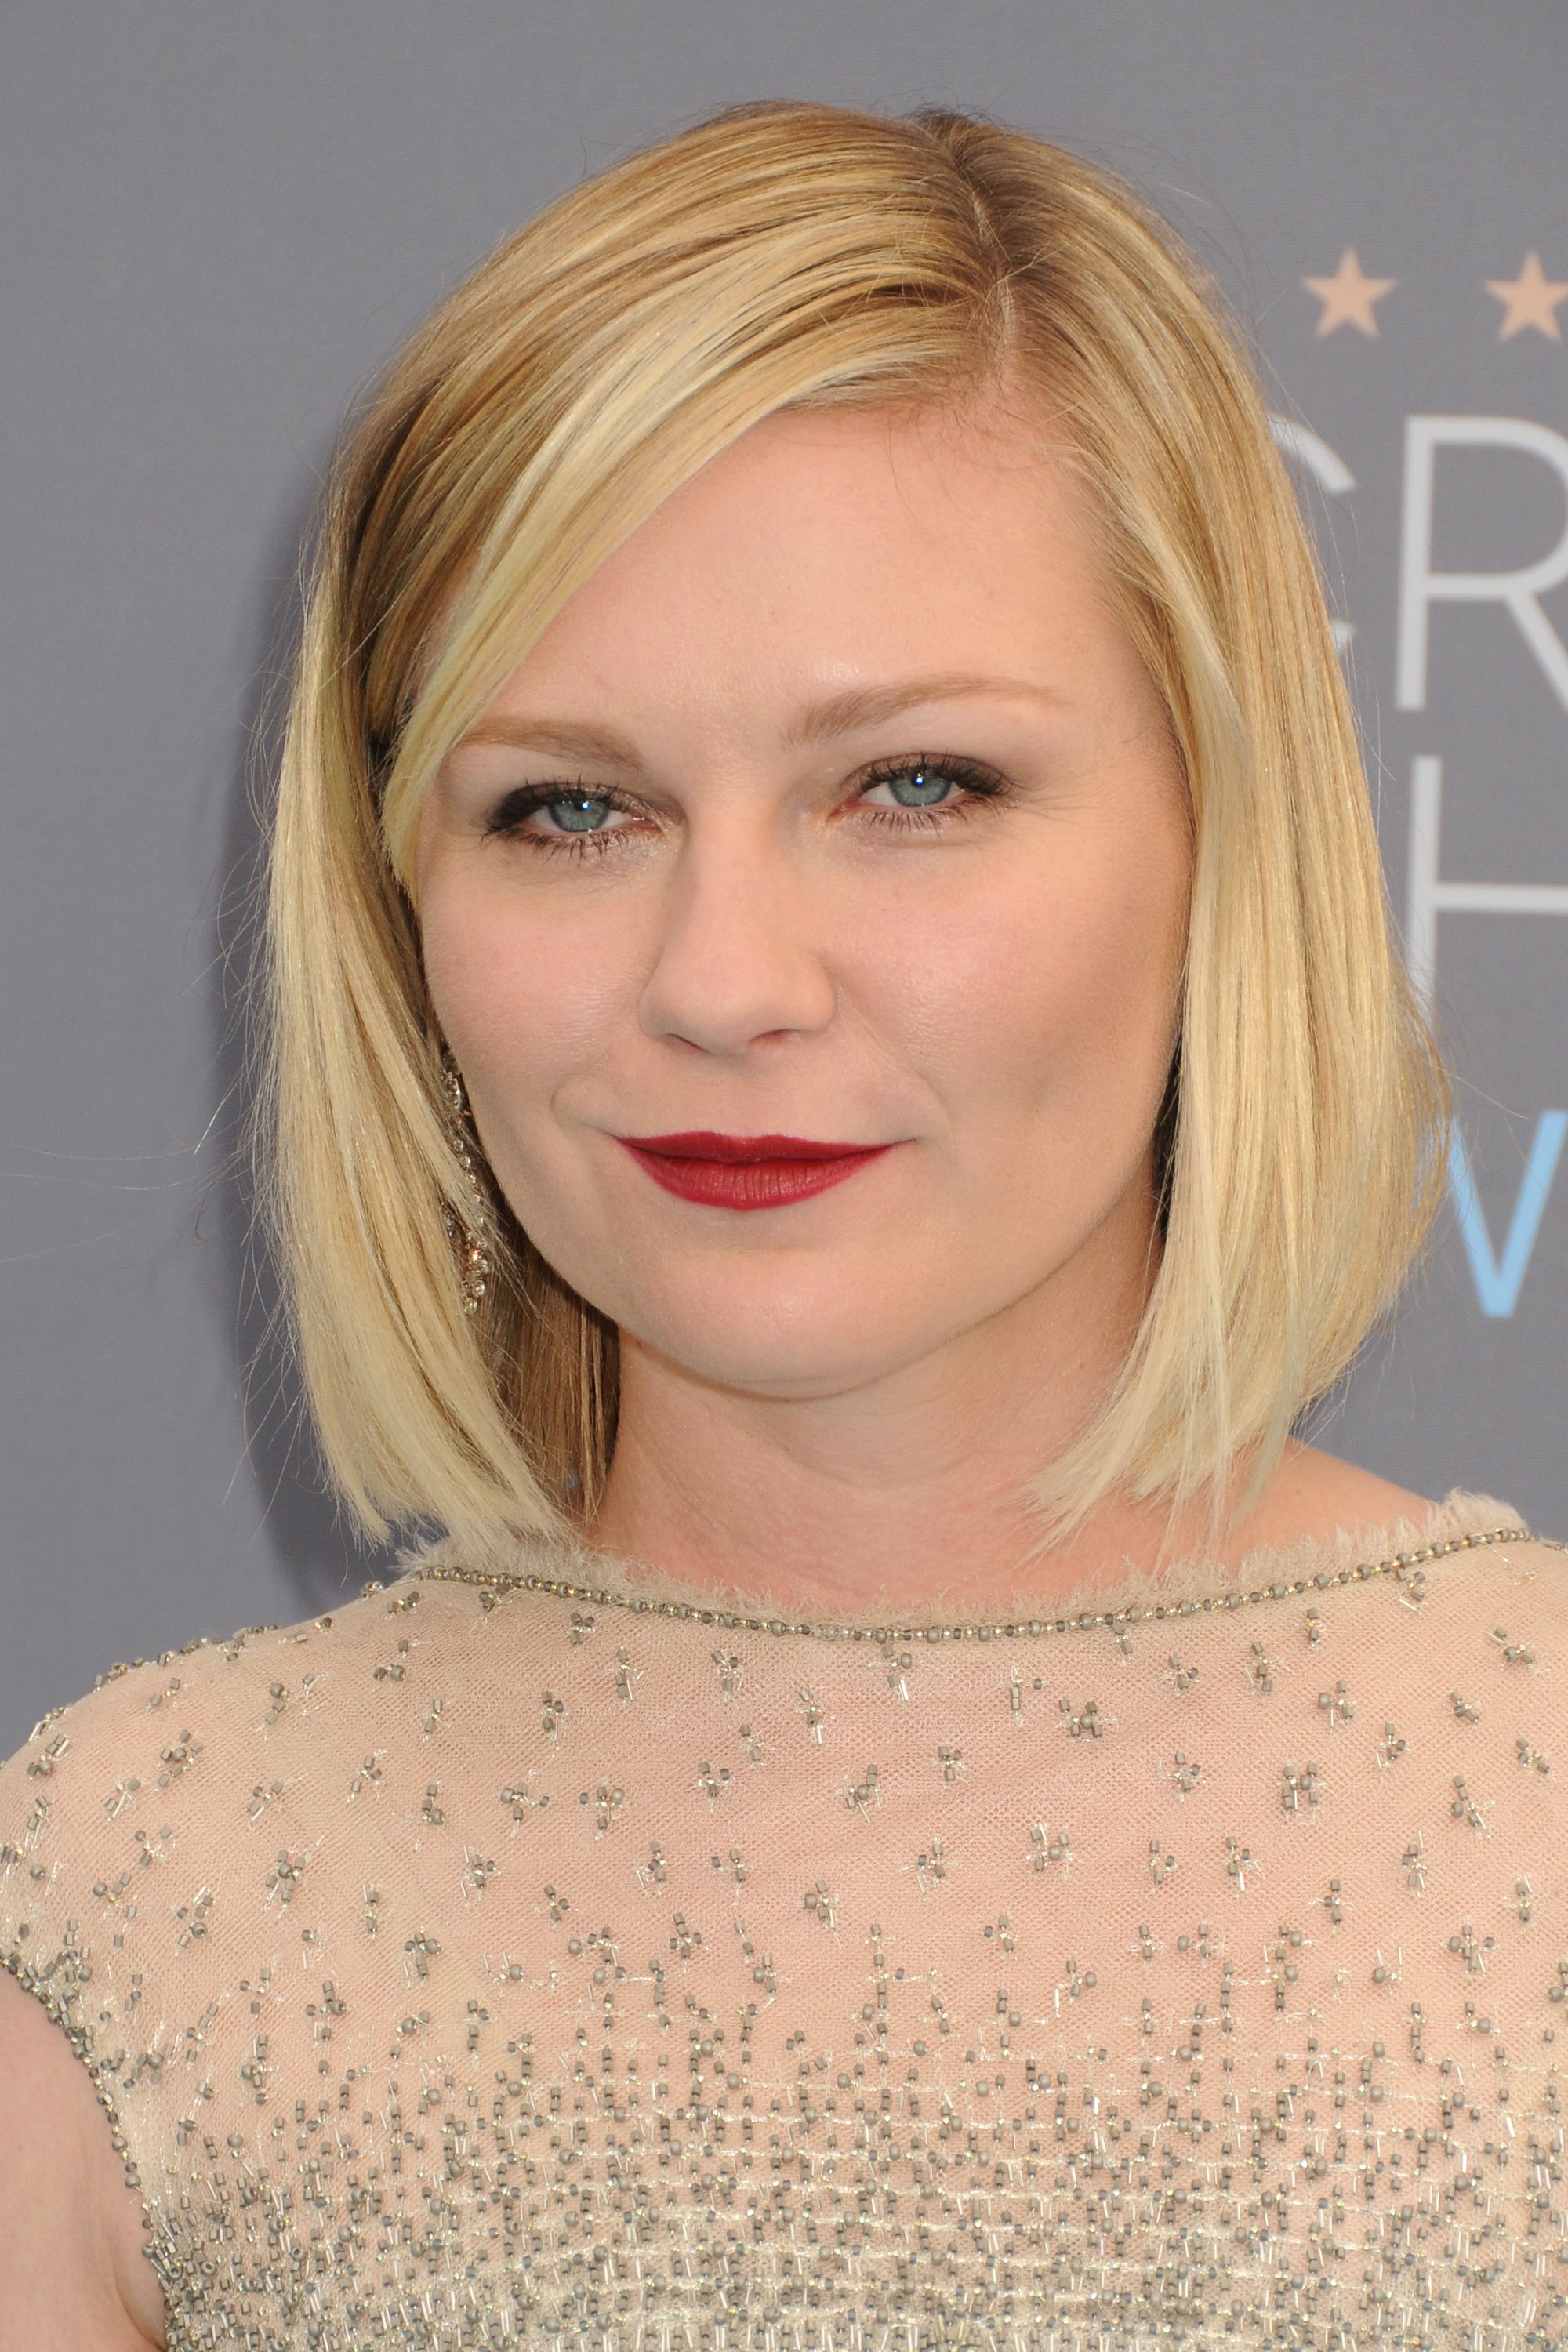 17 January 2016 - Santa Monica, California - Kirsten Dunst. 21st Annual Critics' Choice Awards - Arrivals held at Barker Hangar.  CAP/ADM/BP ©BP/ADM/Capital Pictures